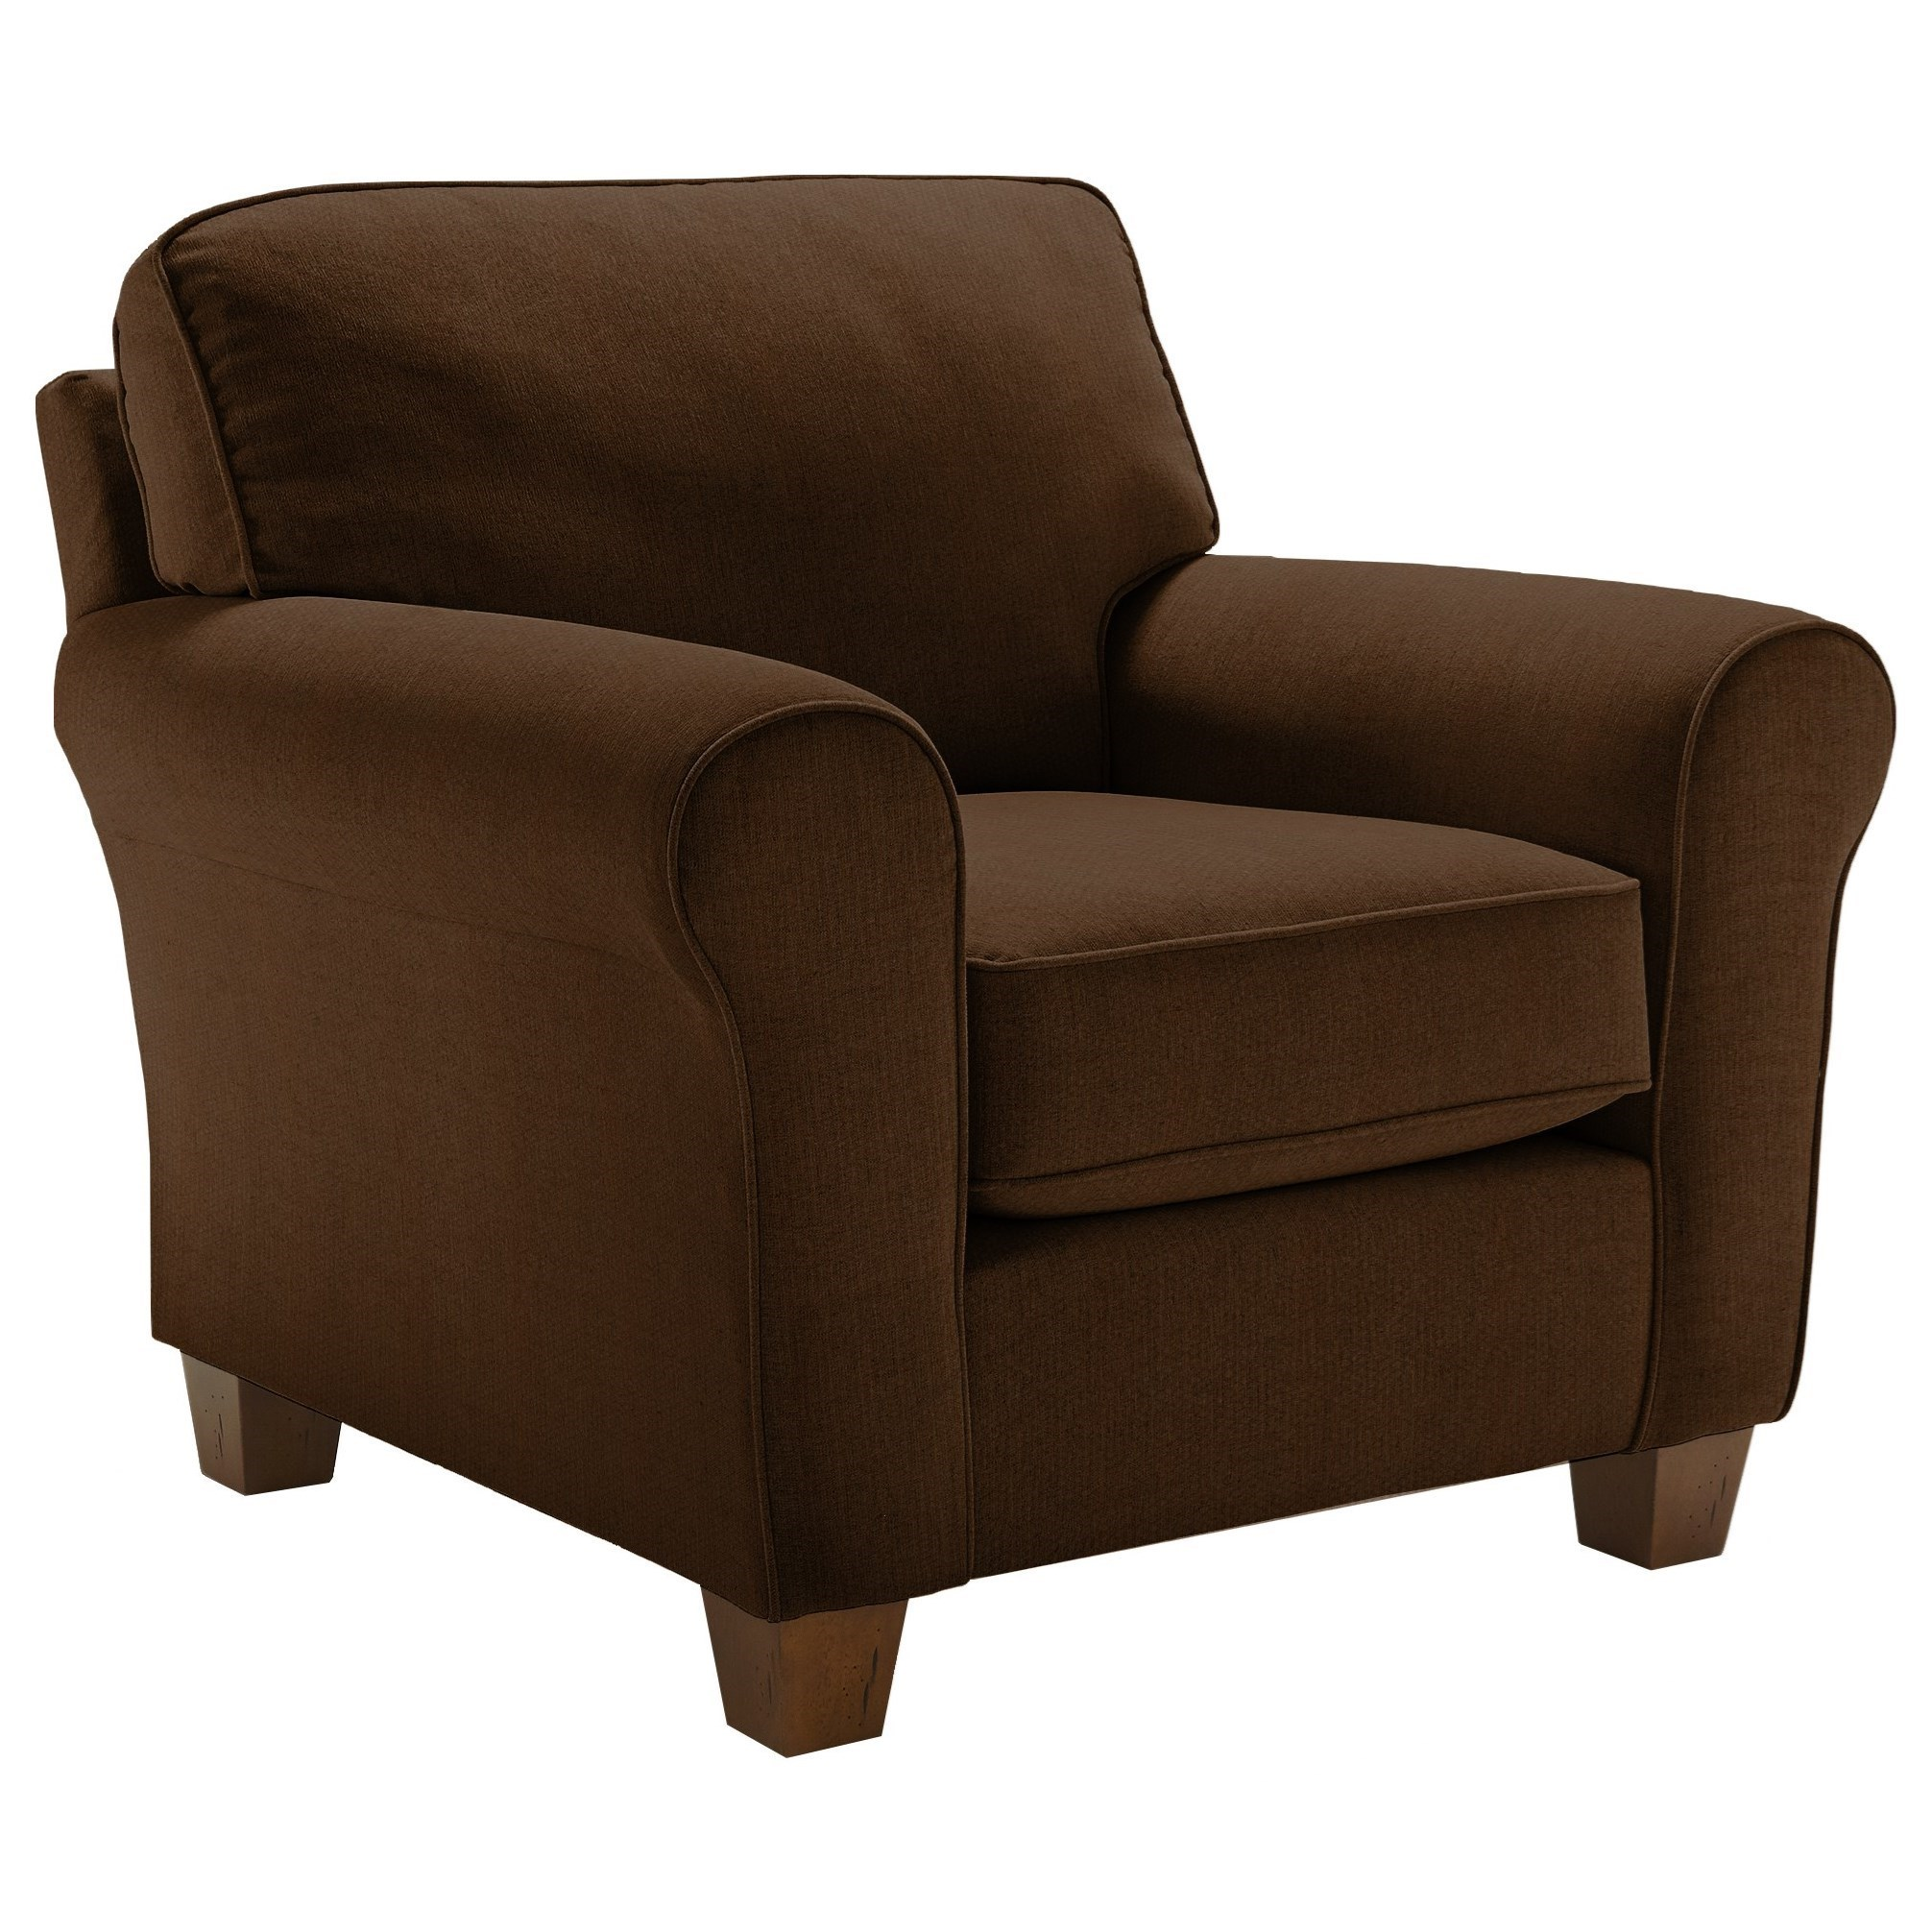 Annabel  Custom Chair by Best Home Furnishings at Simply Home by Lindy's